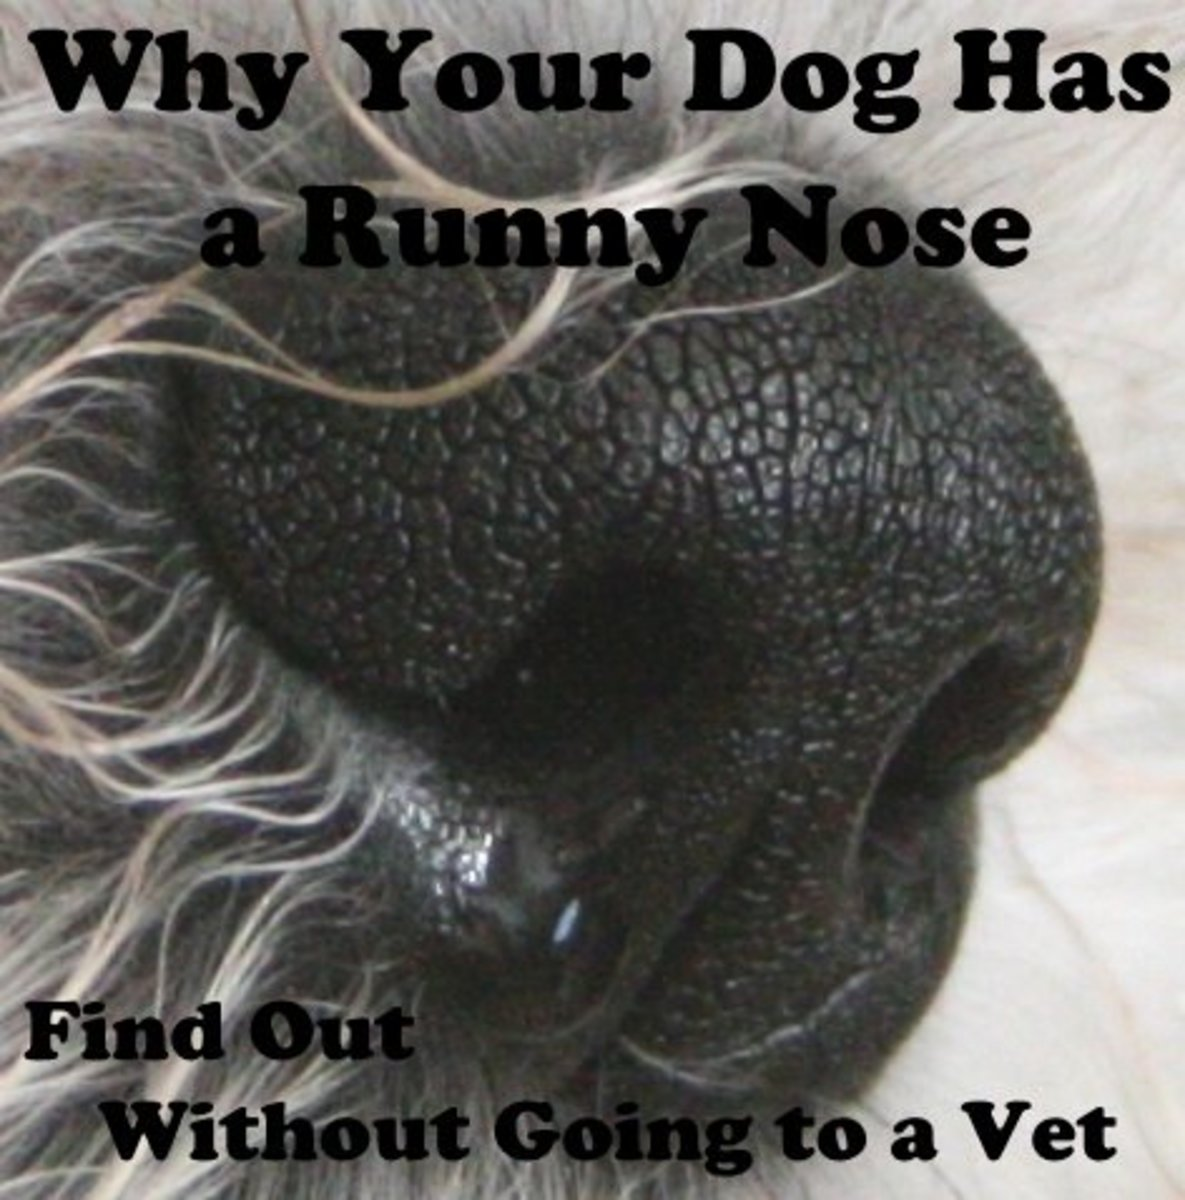 You can find out why your dog has a runny nose without going to the vet.